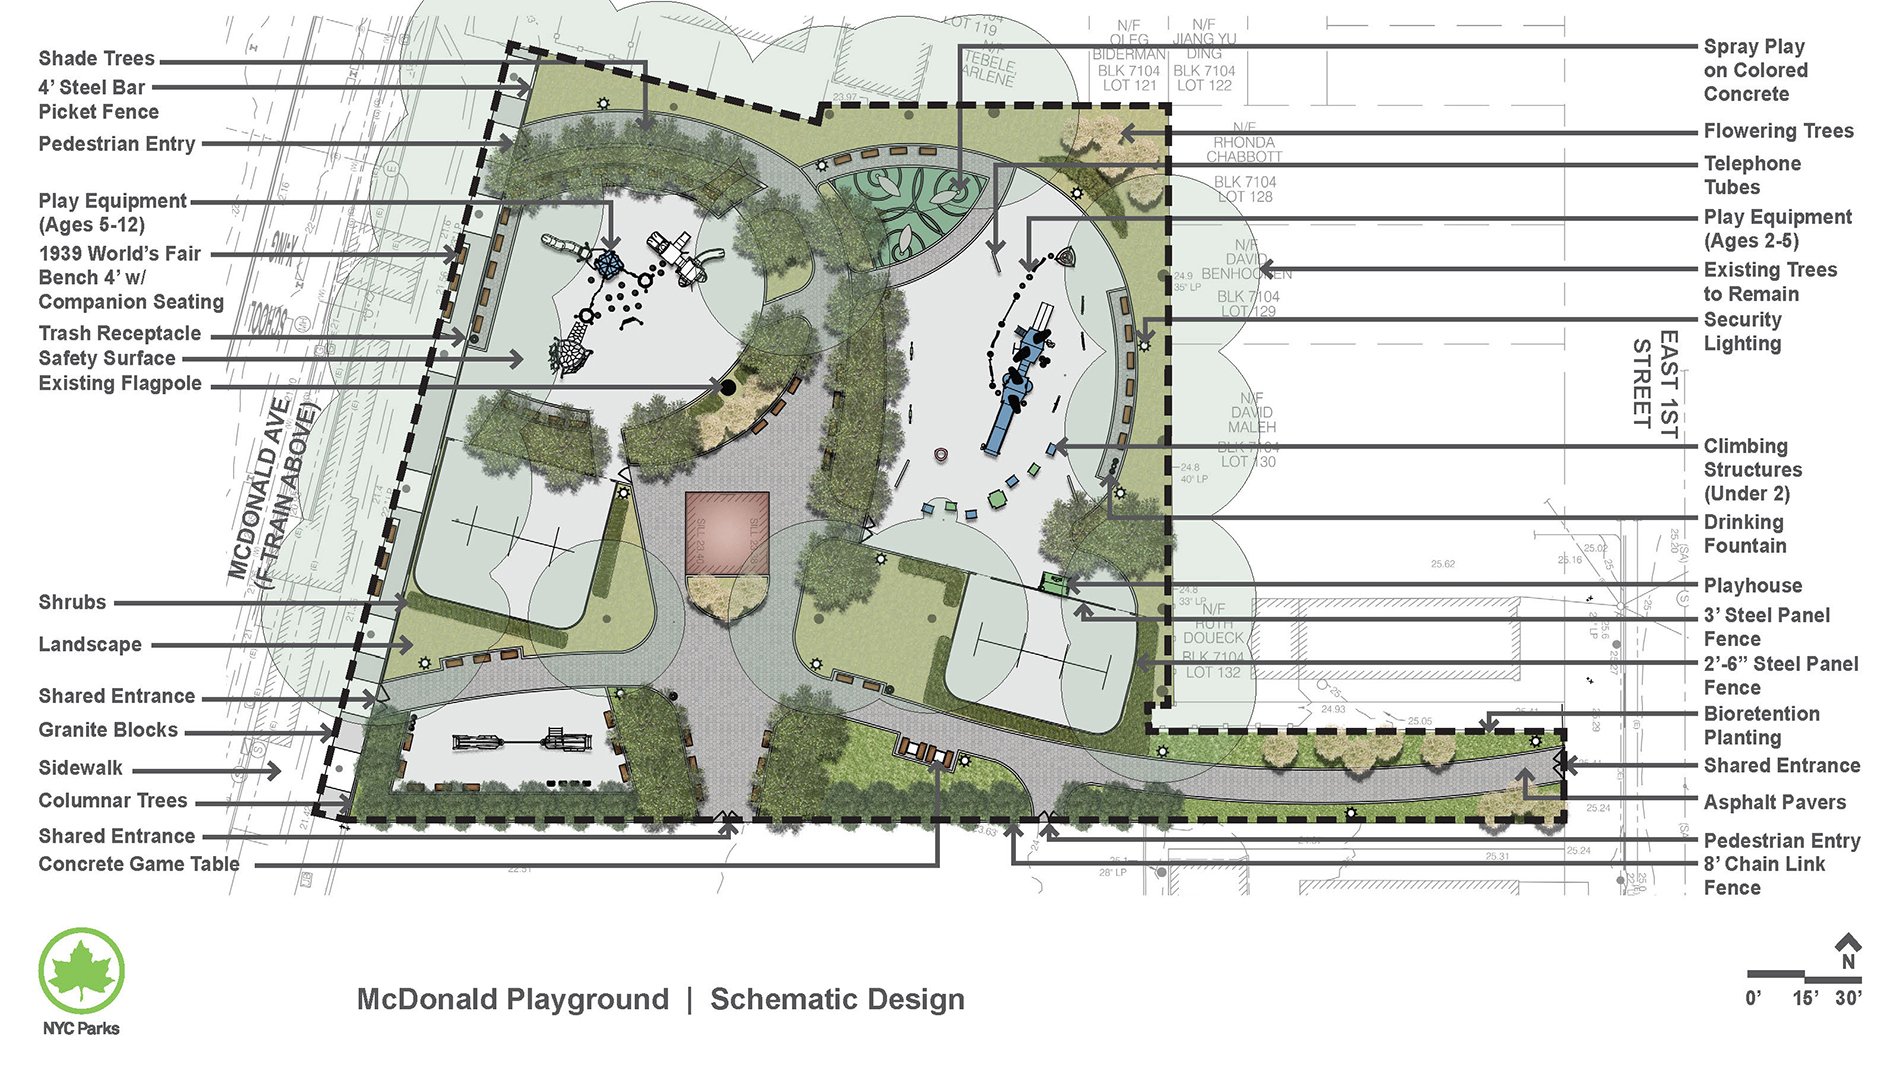 Design of McDonald Playground Reconstruction